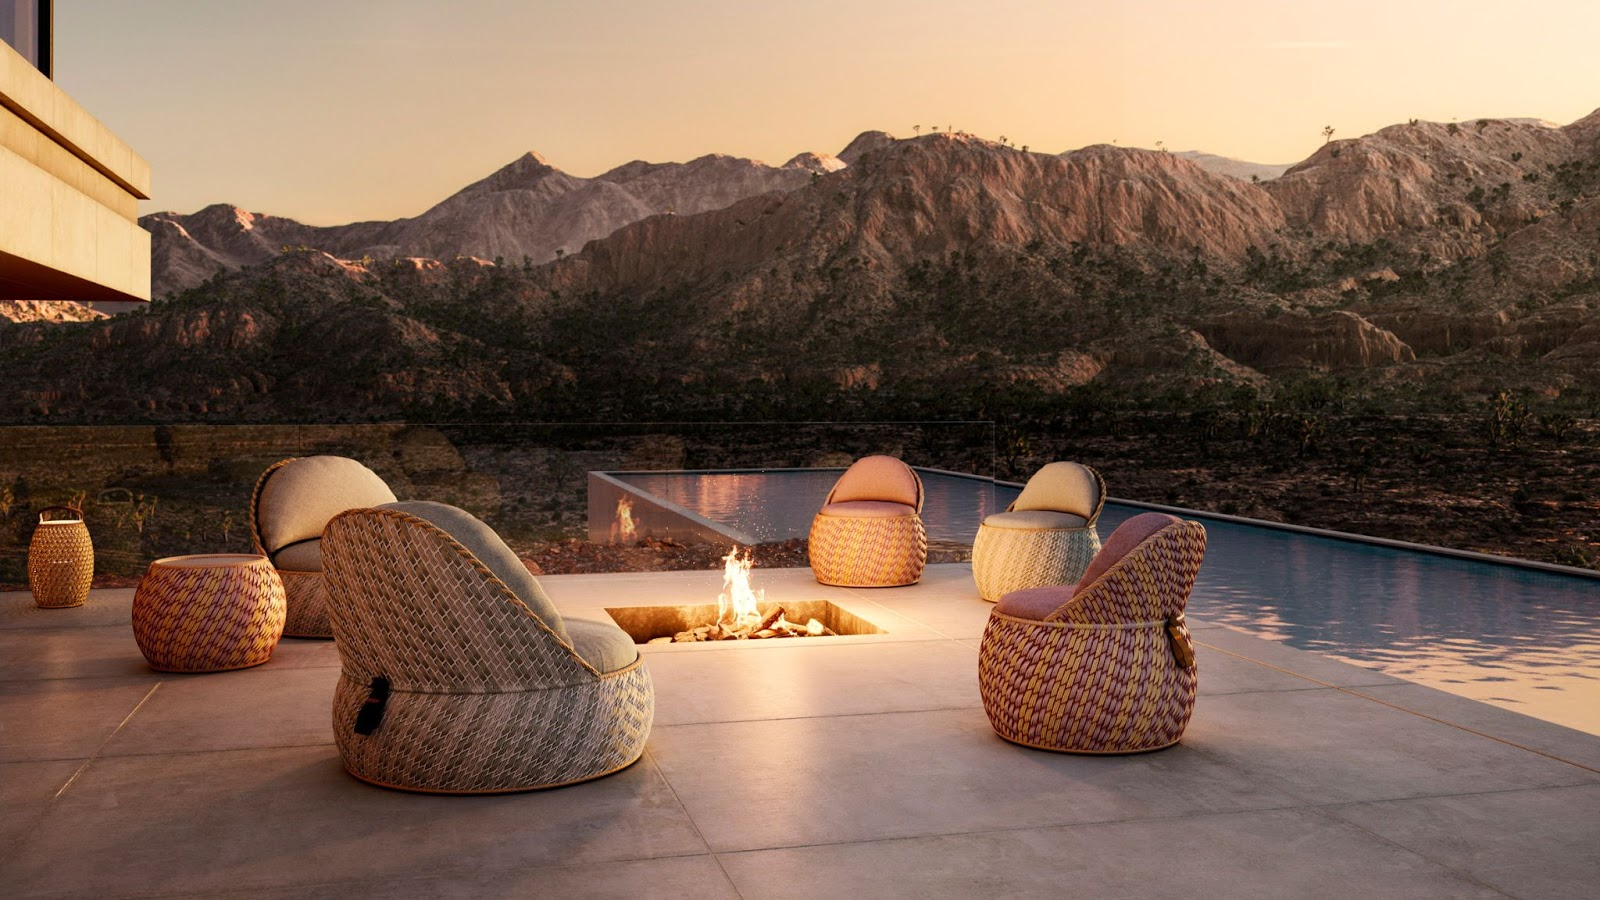 Ten contemporary furniture designs for outdoor living